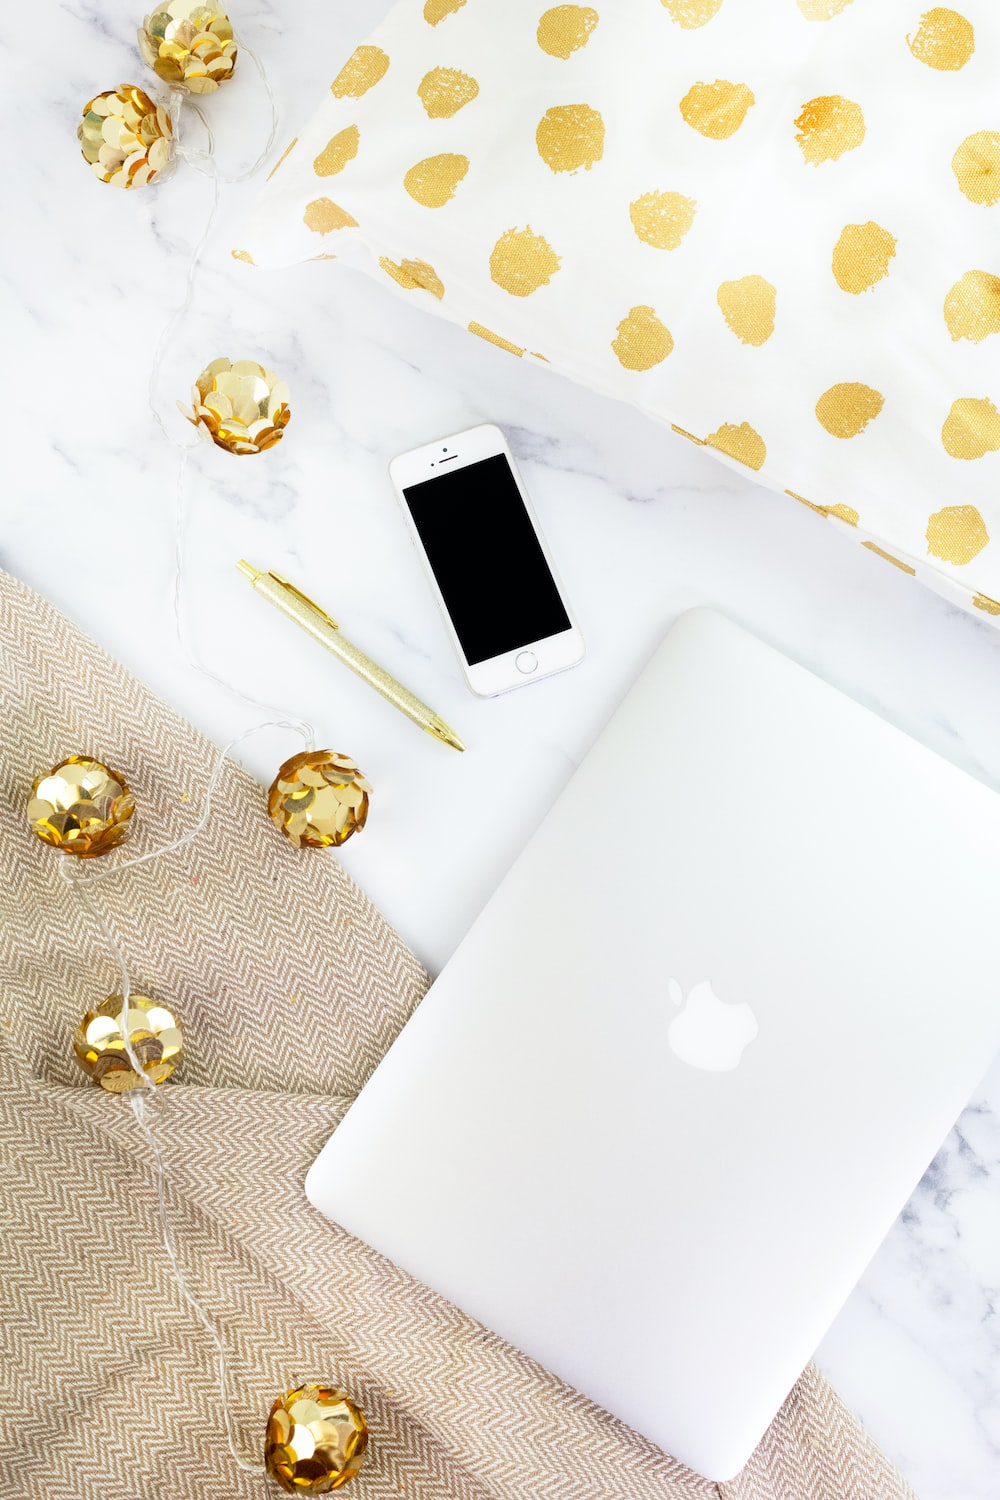 gold iPhone beside pen on white textile